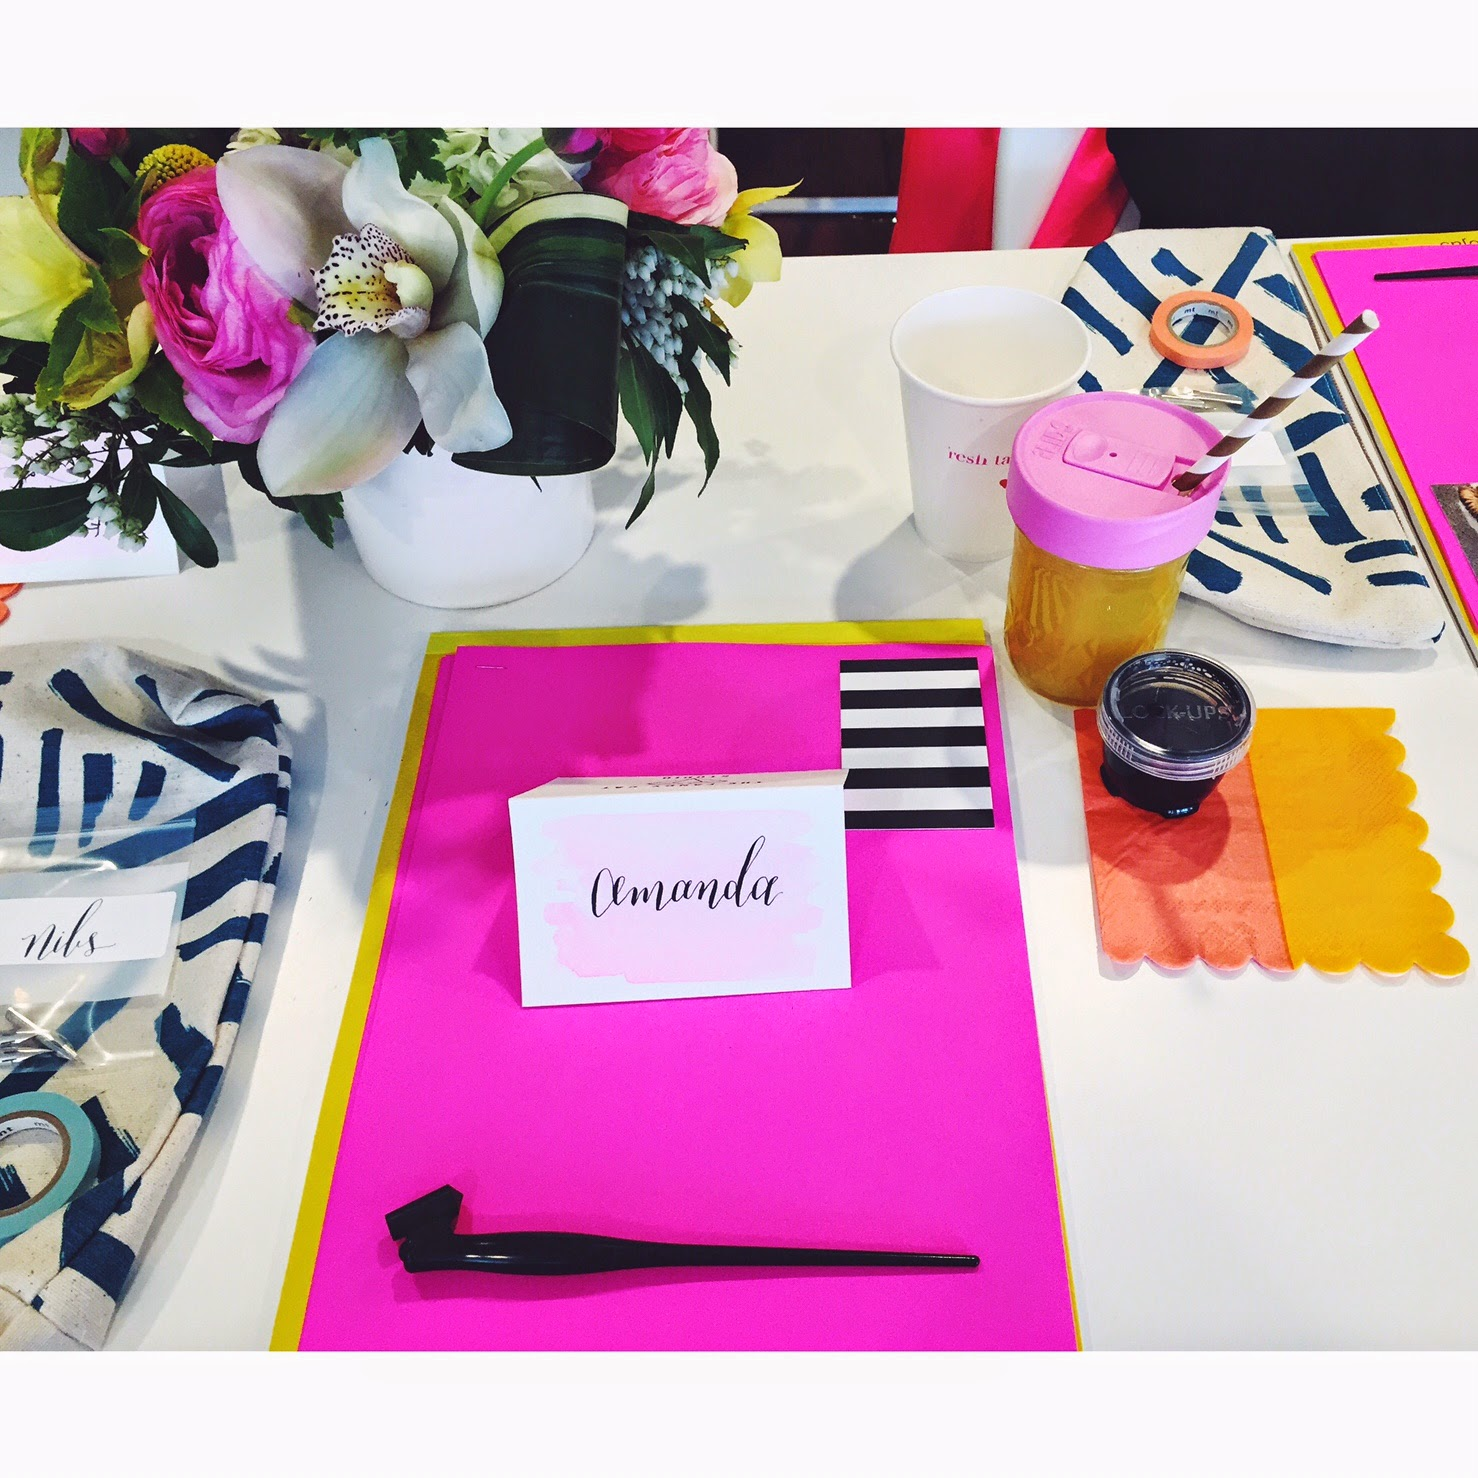 The Accessory Getting Fancy With Calligraphy And The